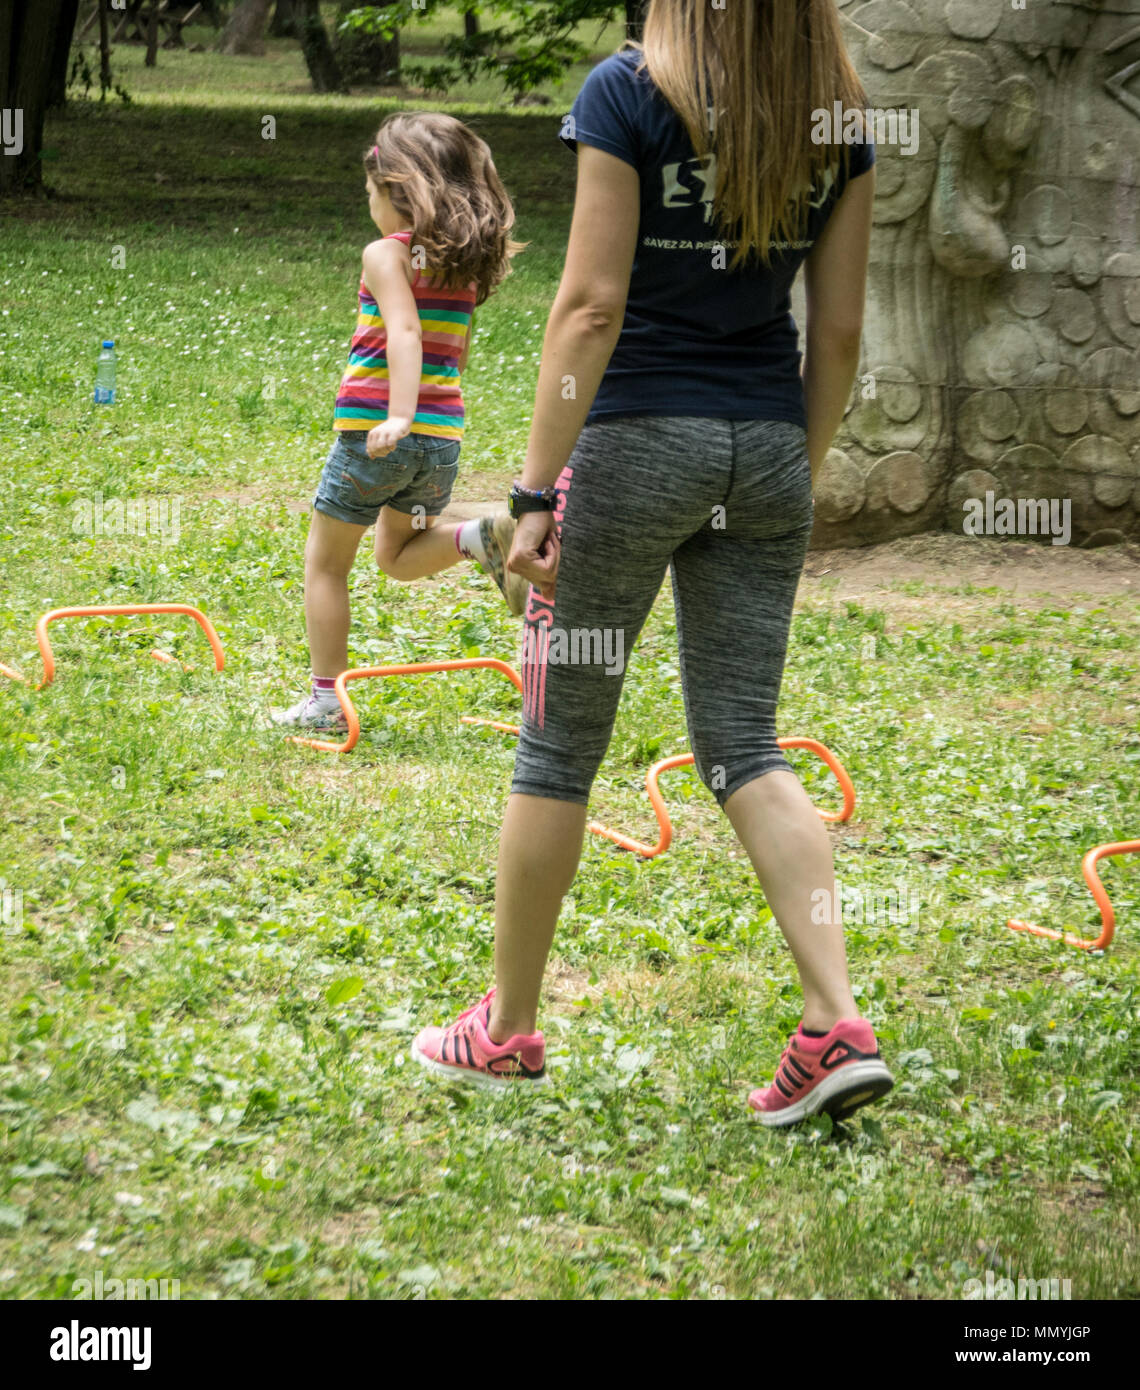 Belgrade, Serbia – May 5th 2018: Sports fair in Belgrade, a kid running over obstacles - Stock Image